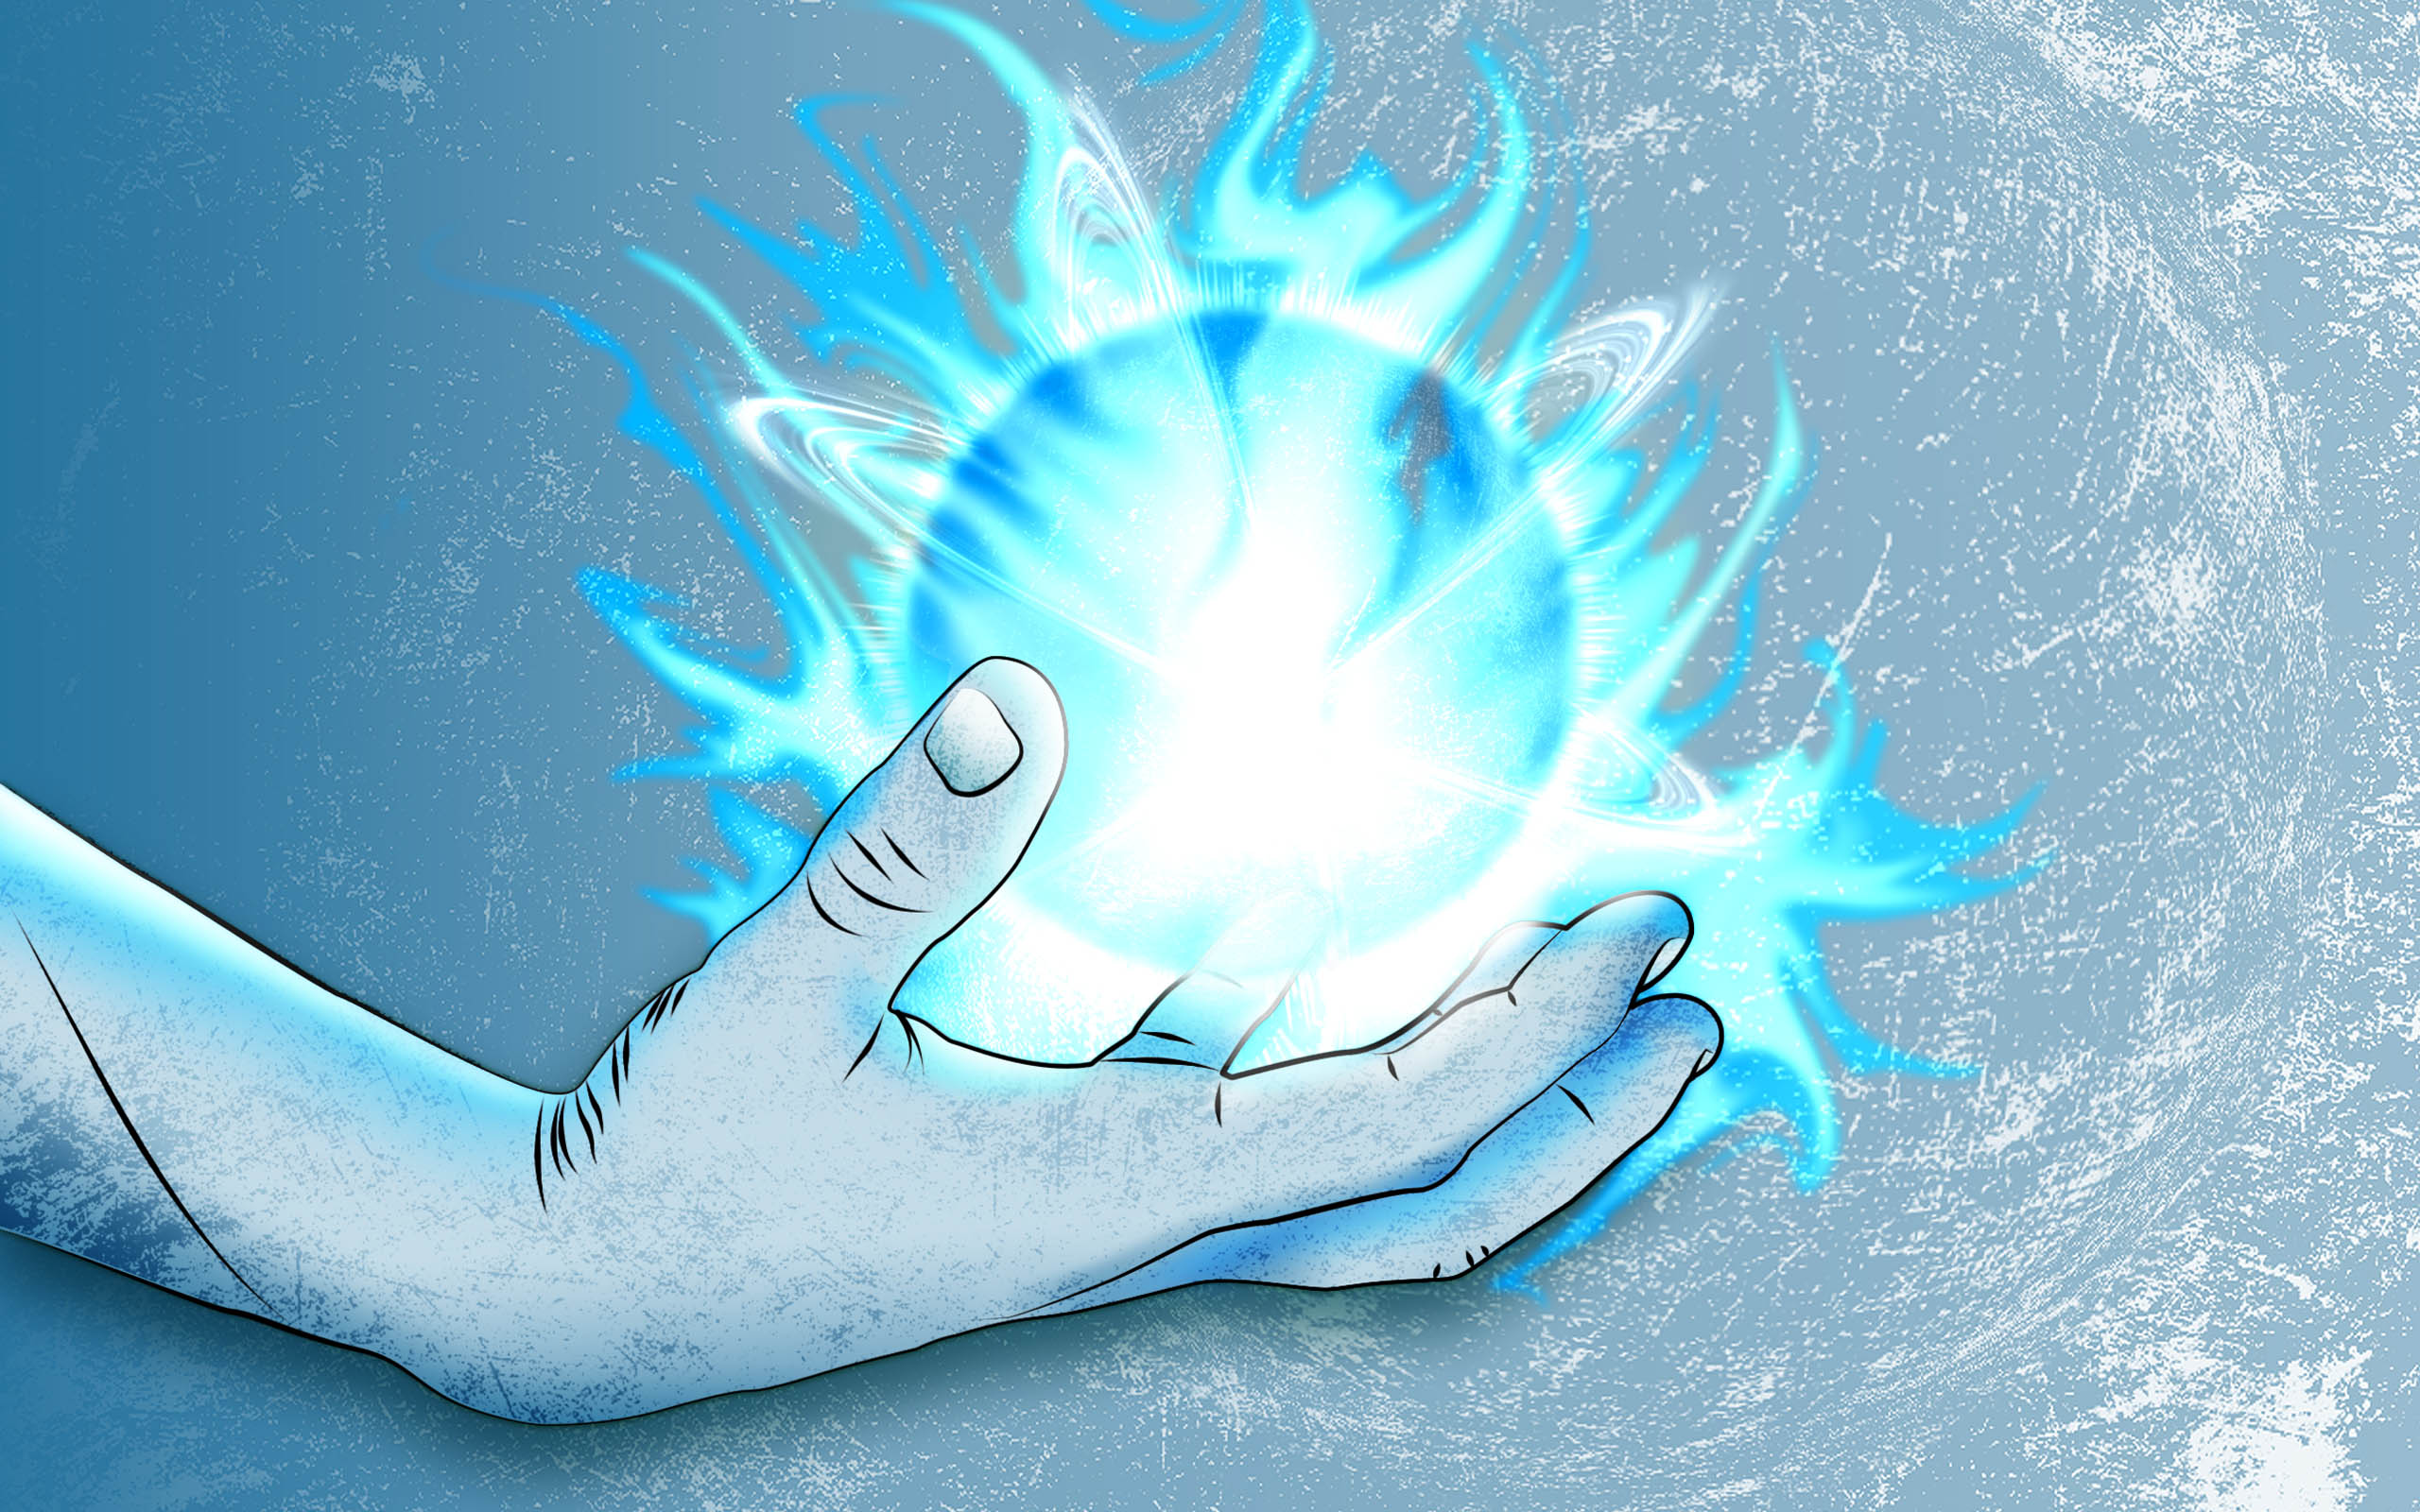 Naruto   Rasengan Wallpapers   HD Wallpapers 95052 2560x1600